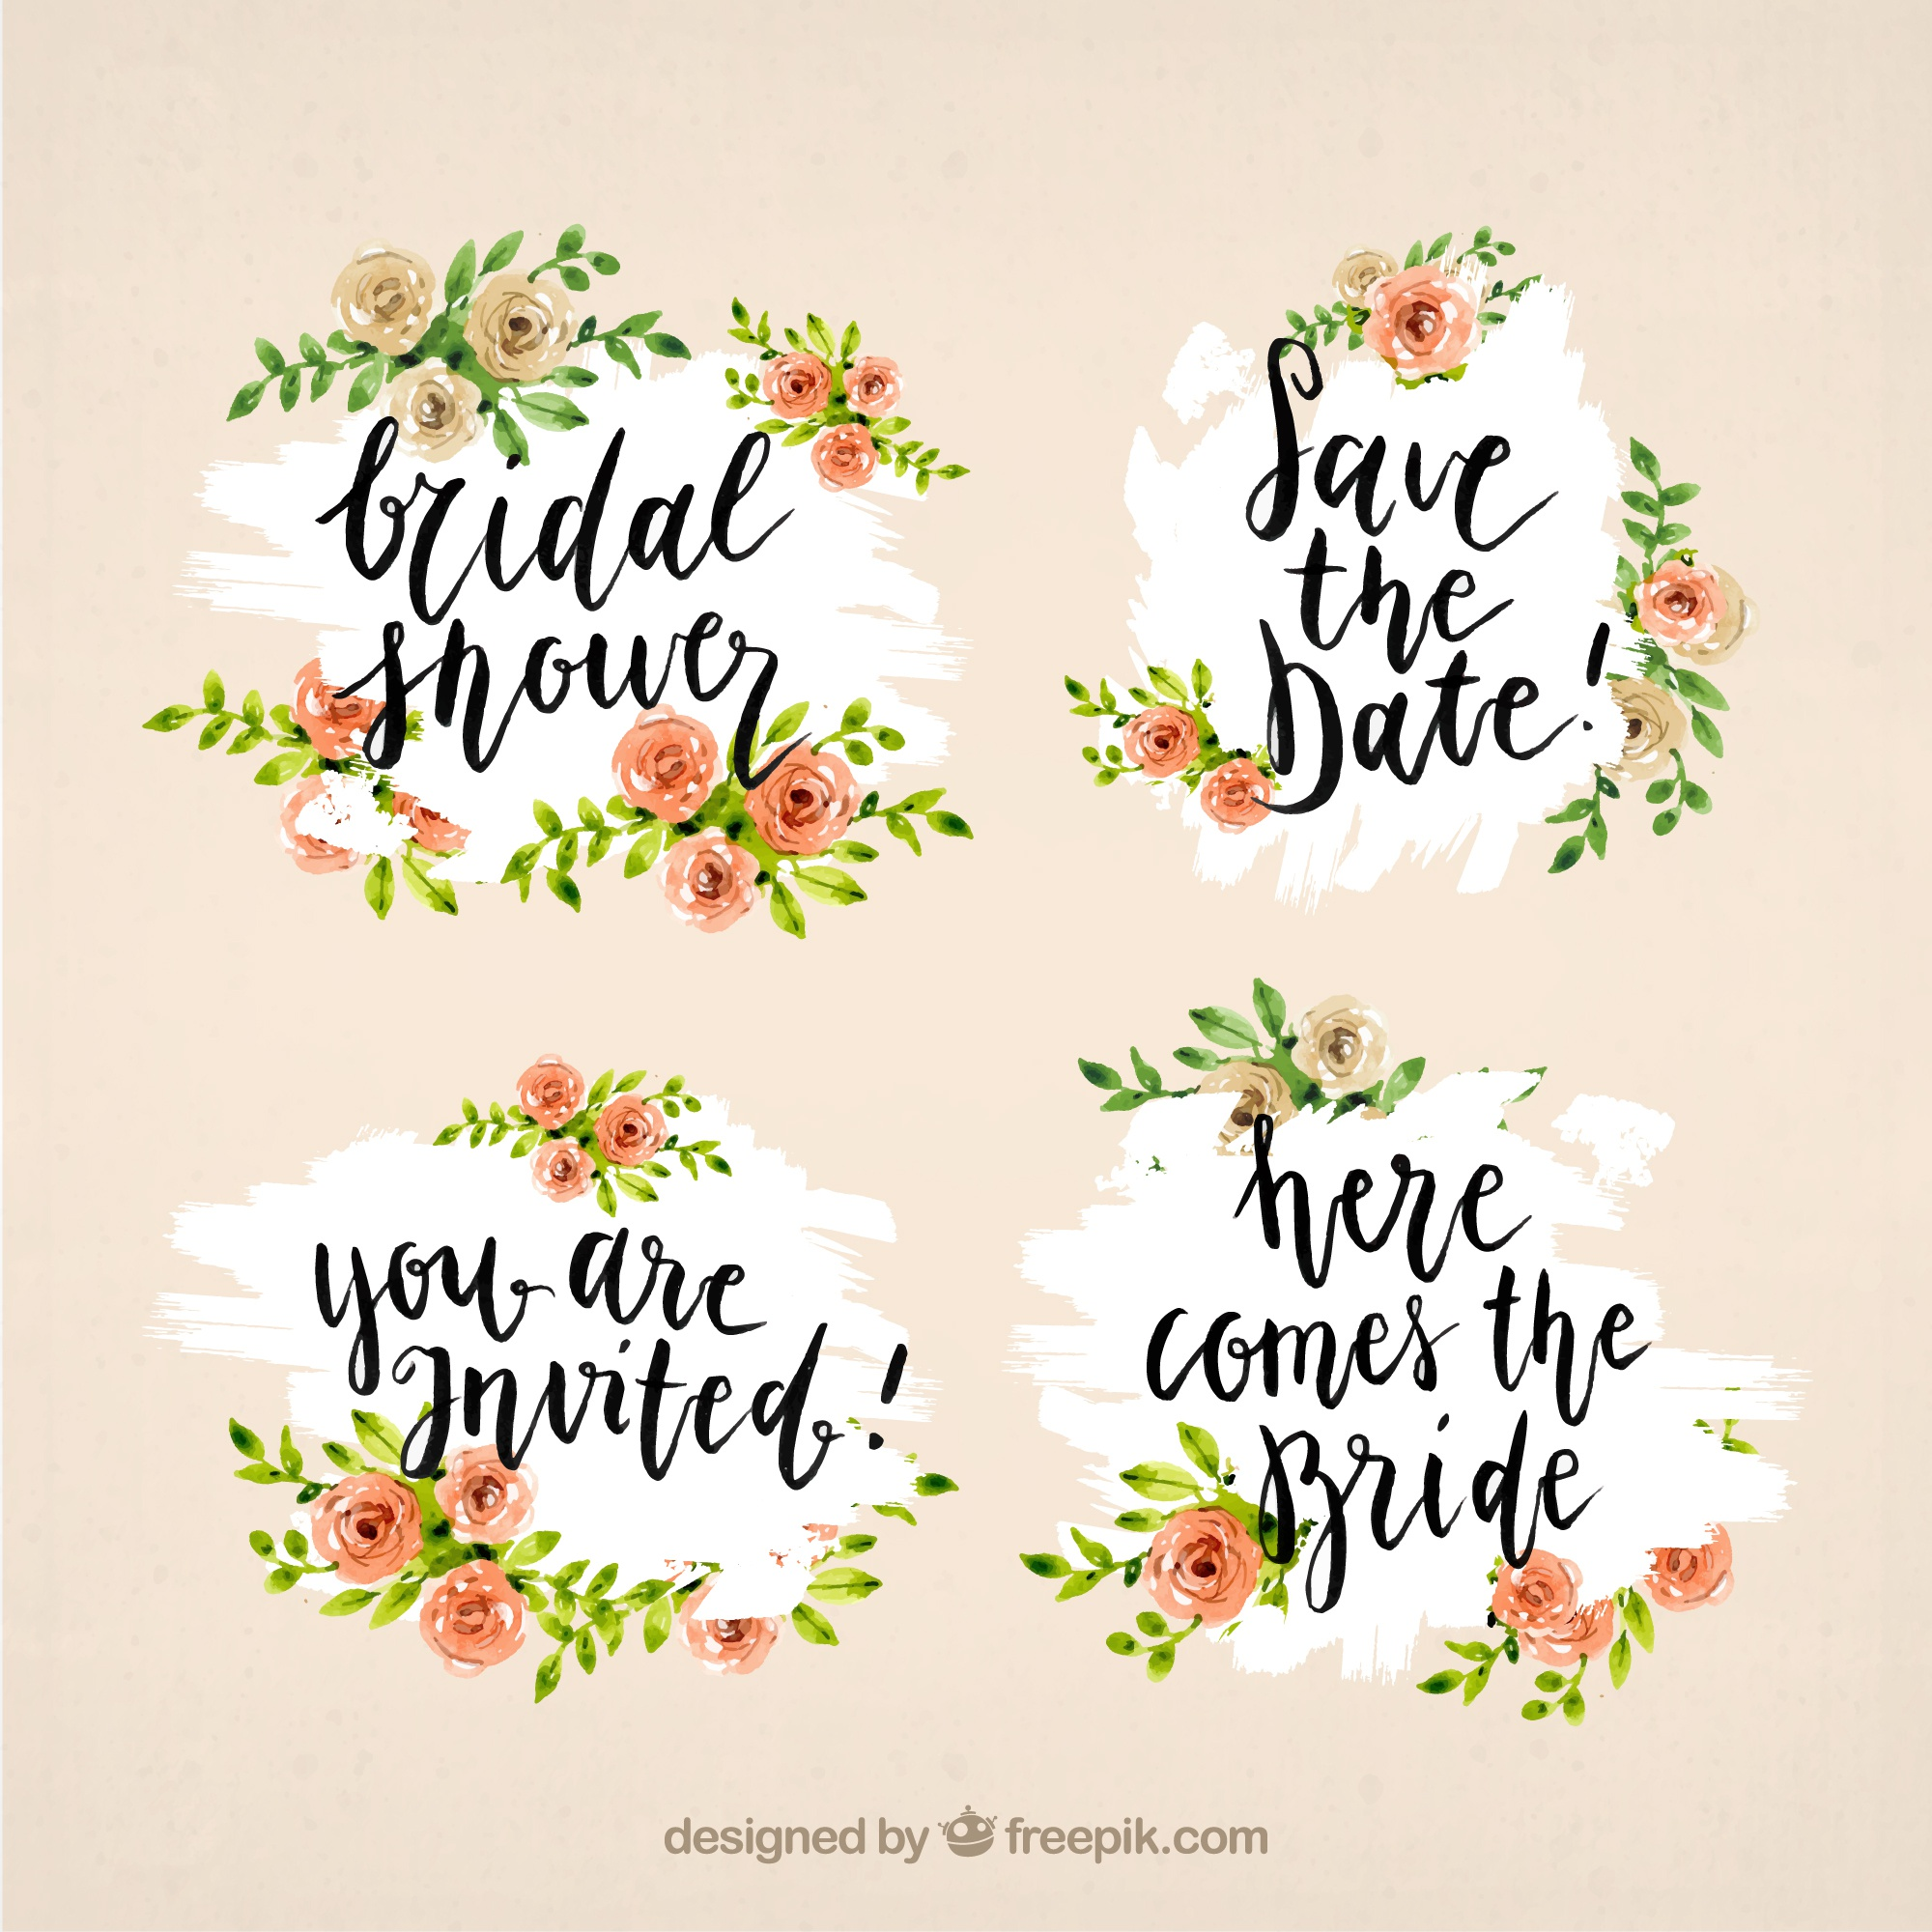 Fantastic bridal shower frames with watercolor flowers